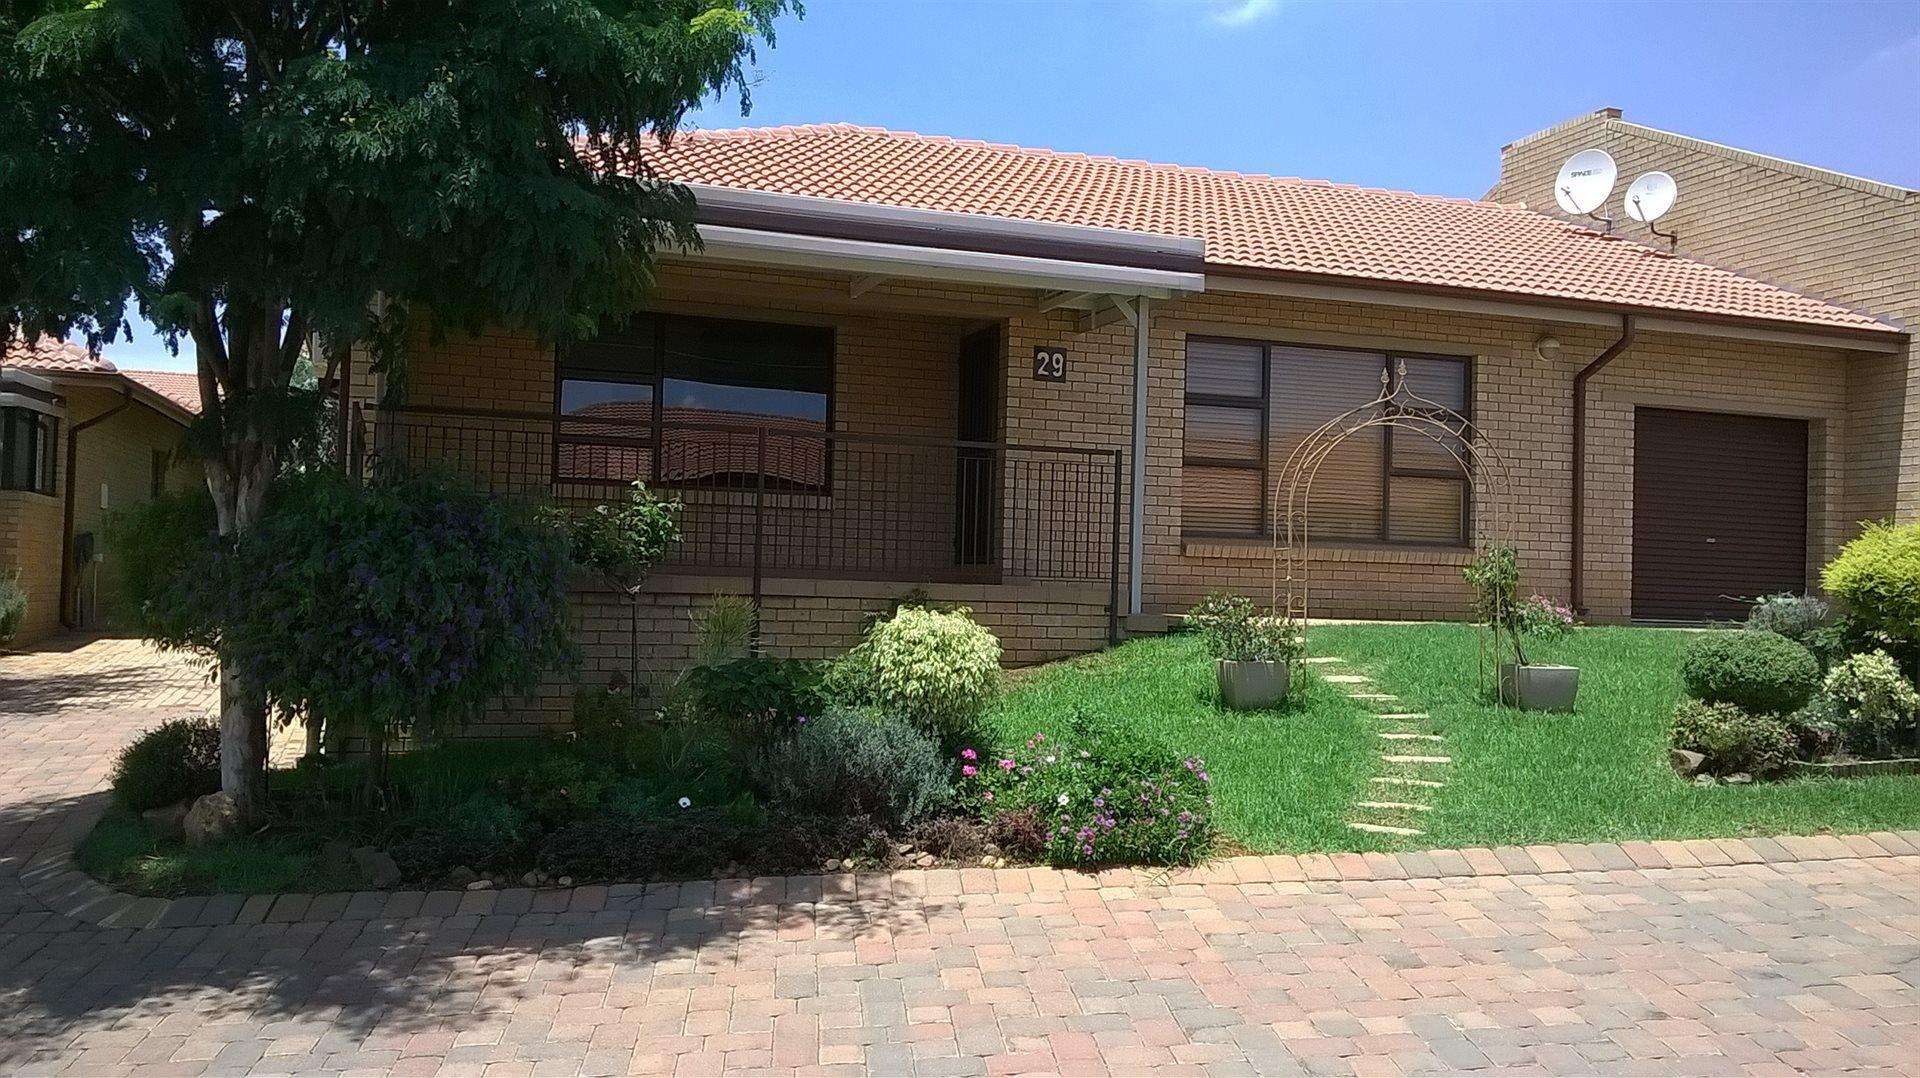 2 Bedroom  Townhouse for Sale in Roodepoort - Gauteng